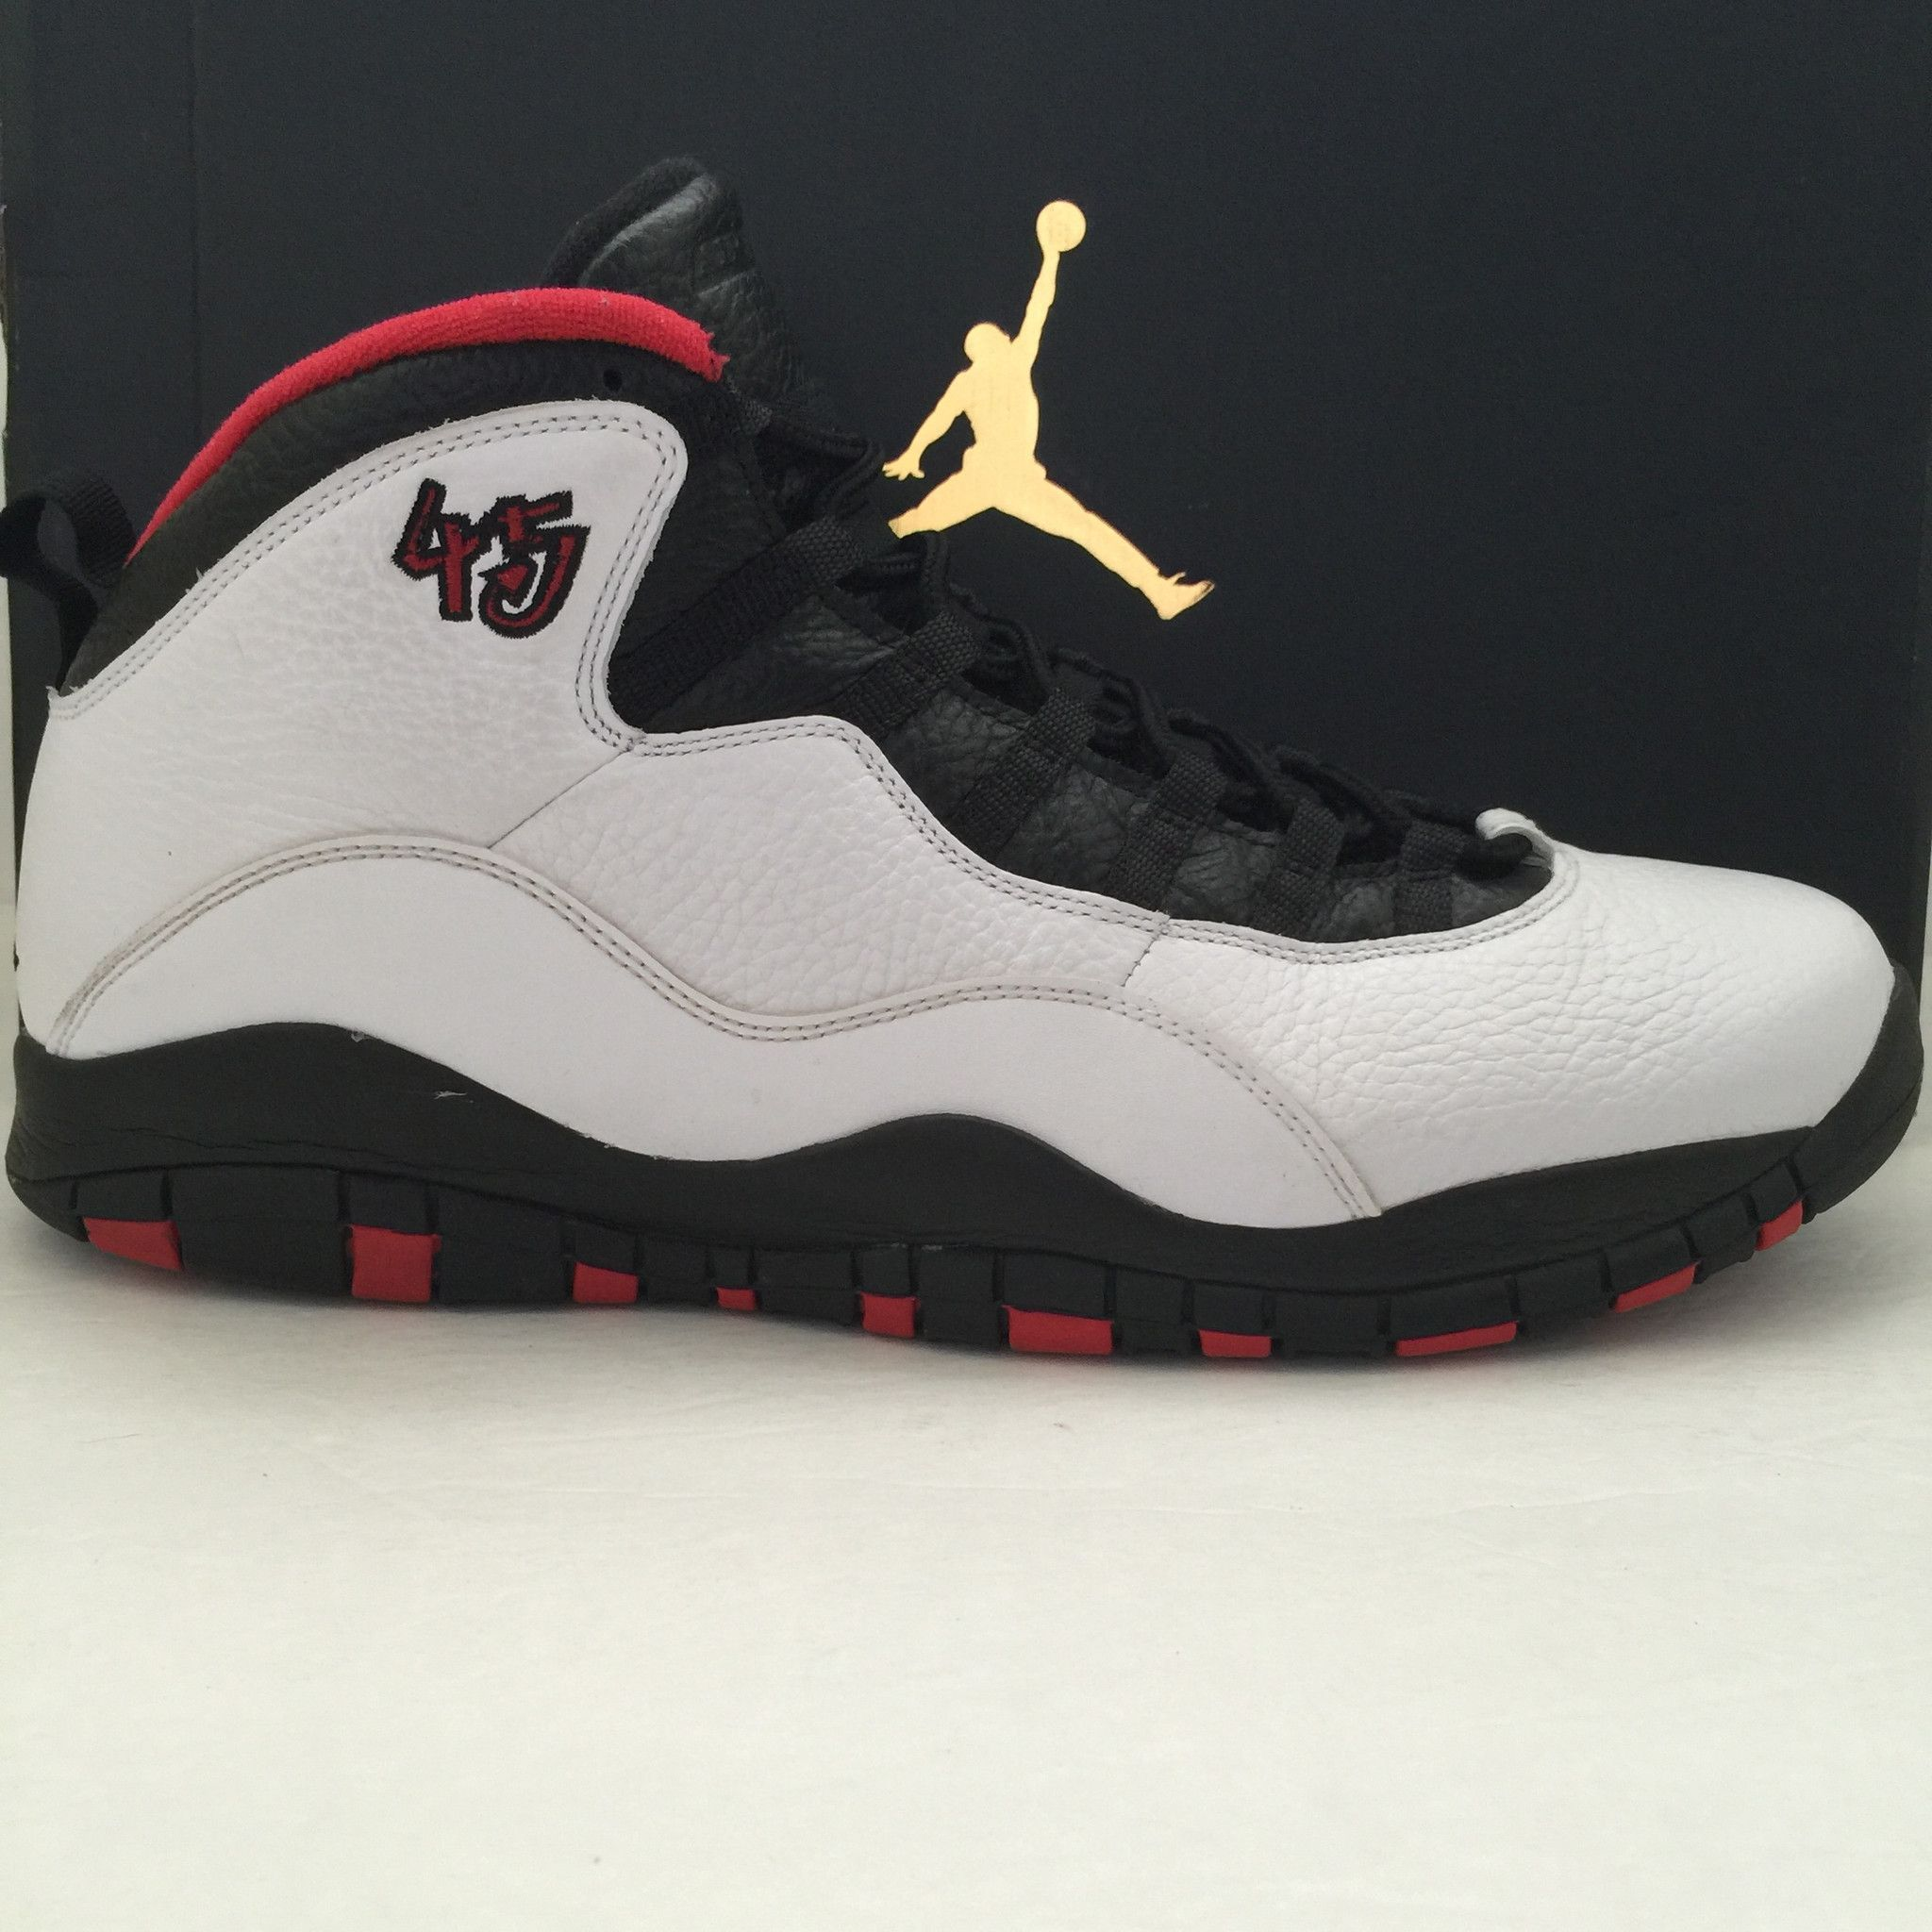 a2f084853c3640 ... nike air jordan retro 10 x double nickel size 14 jordan retro 10 nike  air